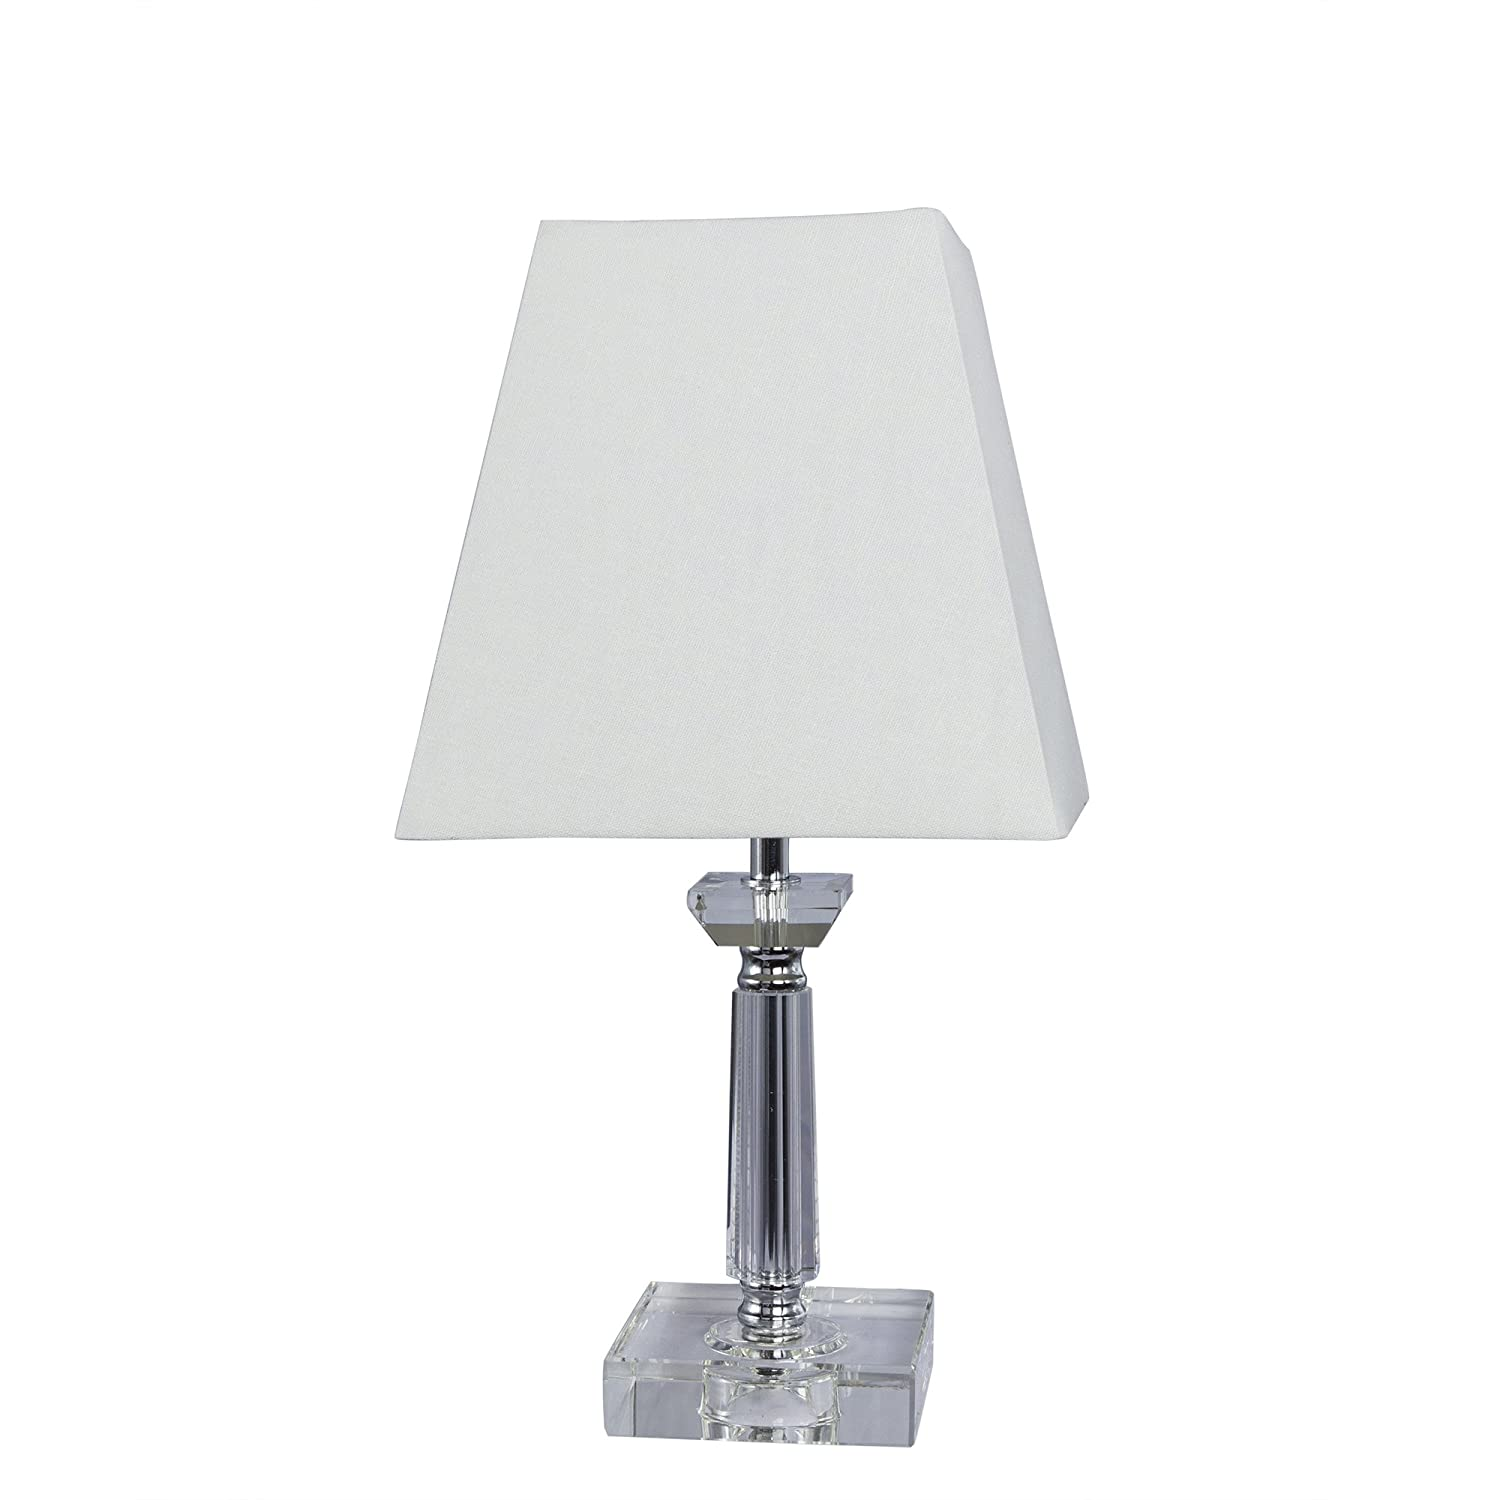 15-Inch Chrome Fangio Lighting 5086 Traditional Crystal and Metal Table Lamp with Accents